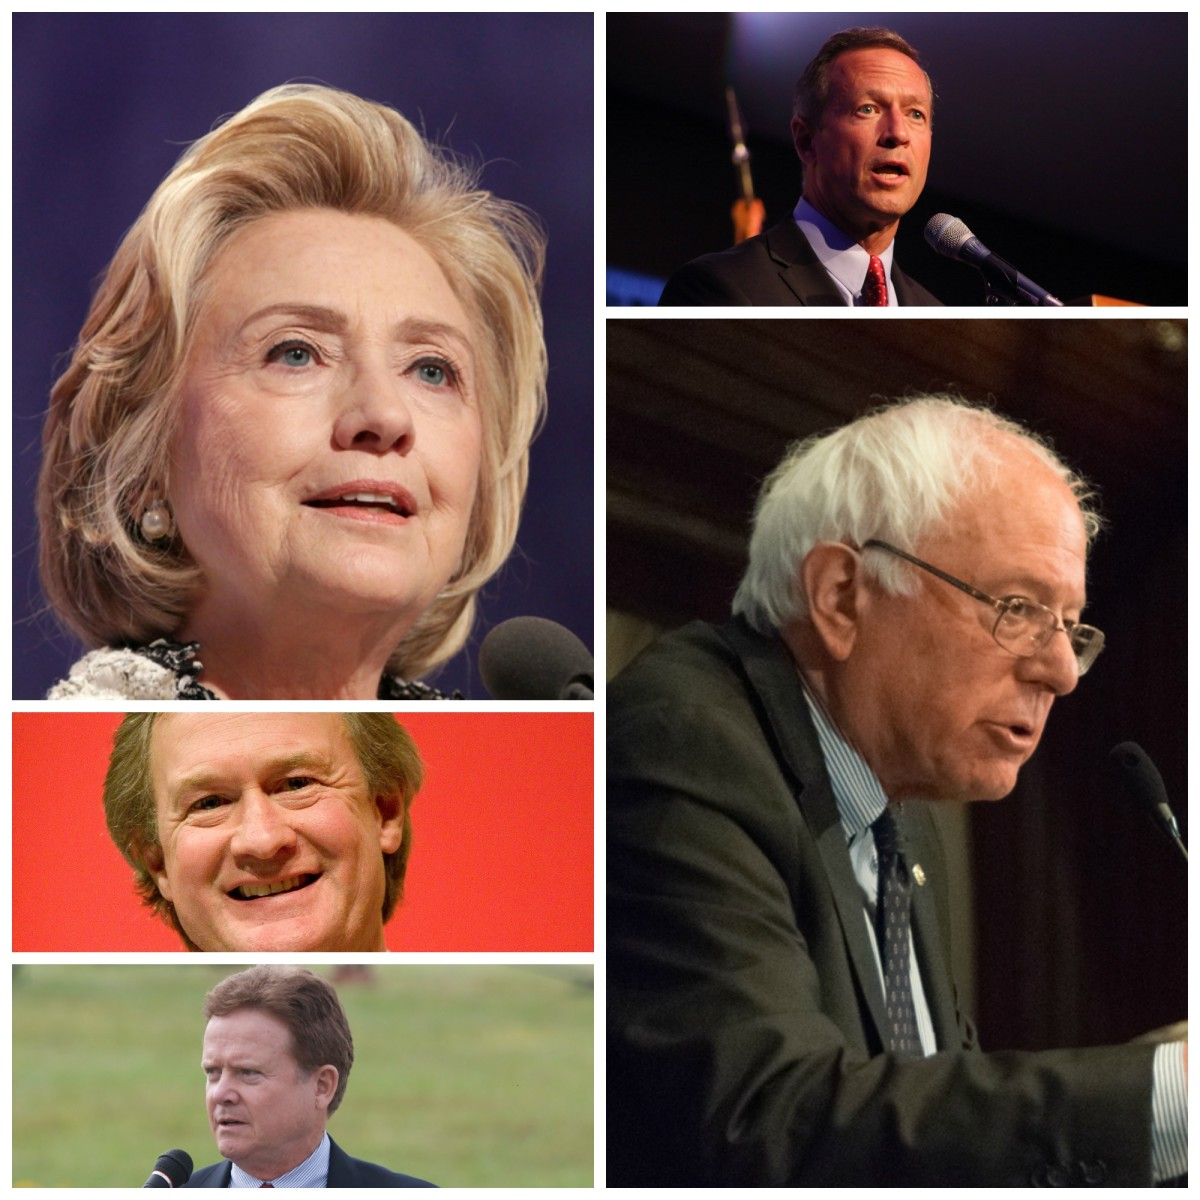 From top left: Hillary Clinton (Photo: JStone/Shutterstock); Martin O'Malley (Photo: Gregory Hauenstein/Flickr); Bernie Sanders (Photo: Albert H. Teich/Shutterstock); Jim Webb (Photo: Rob Shenk/Flickr); Lincoln Chafee (Photo: Kenneth C. Zirkel/Wikimedia Commons).